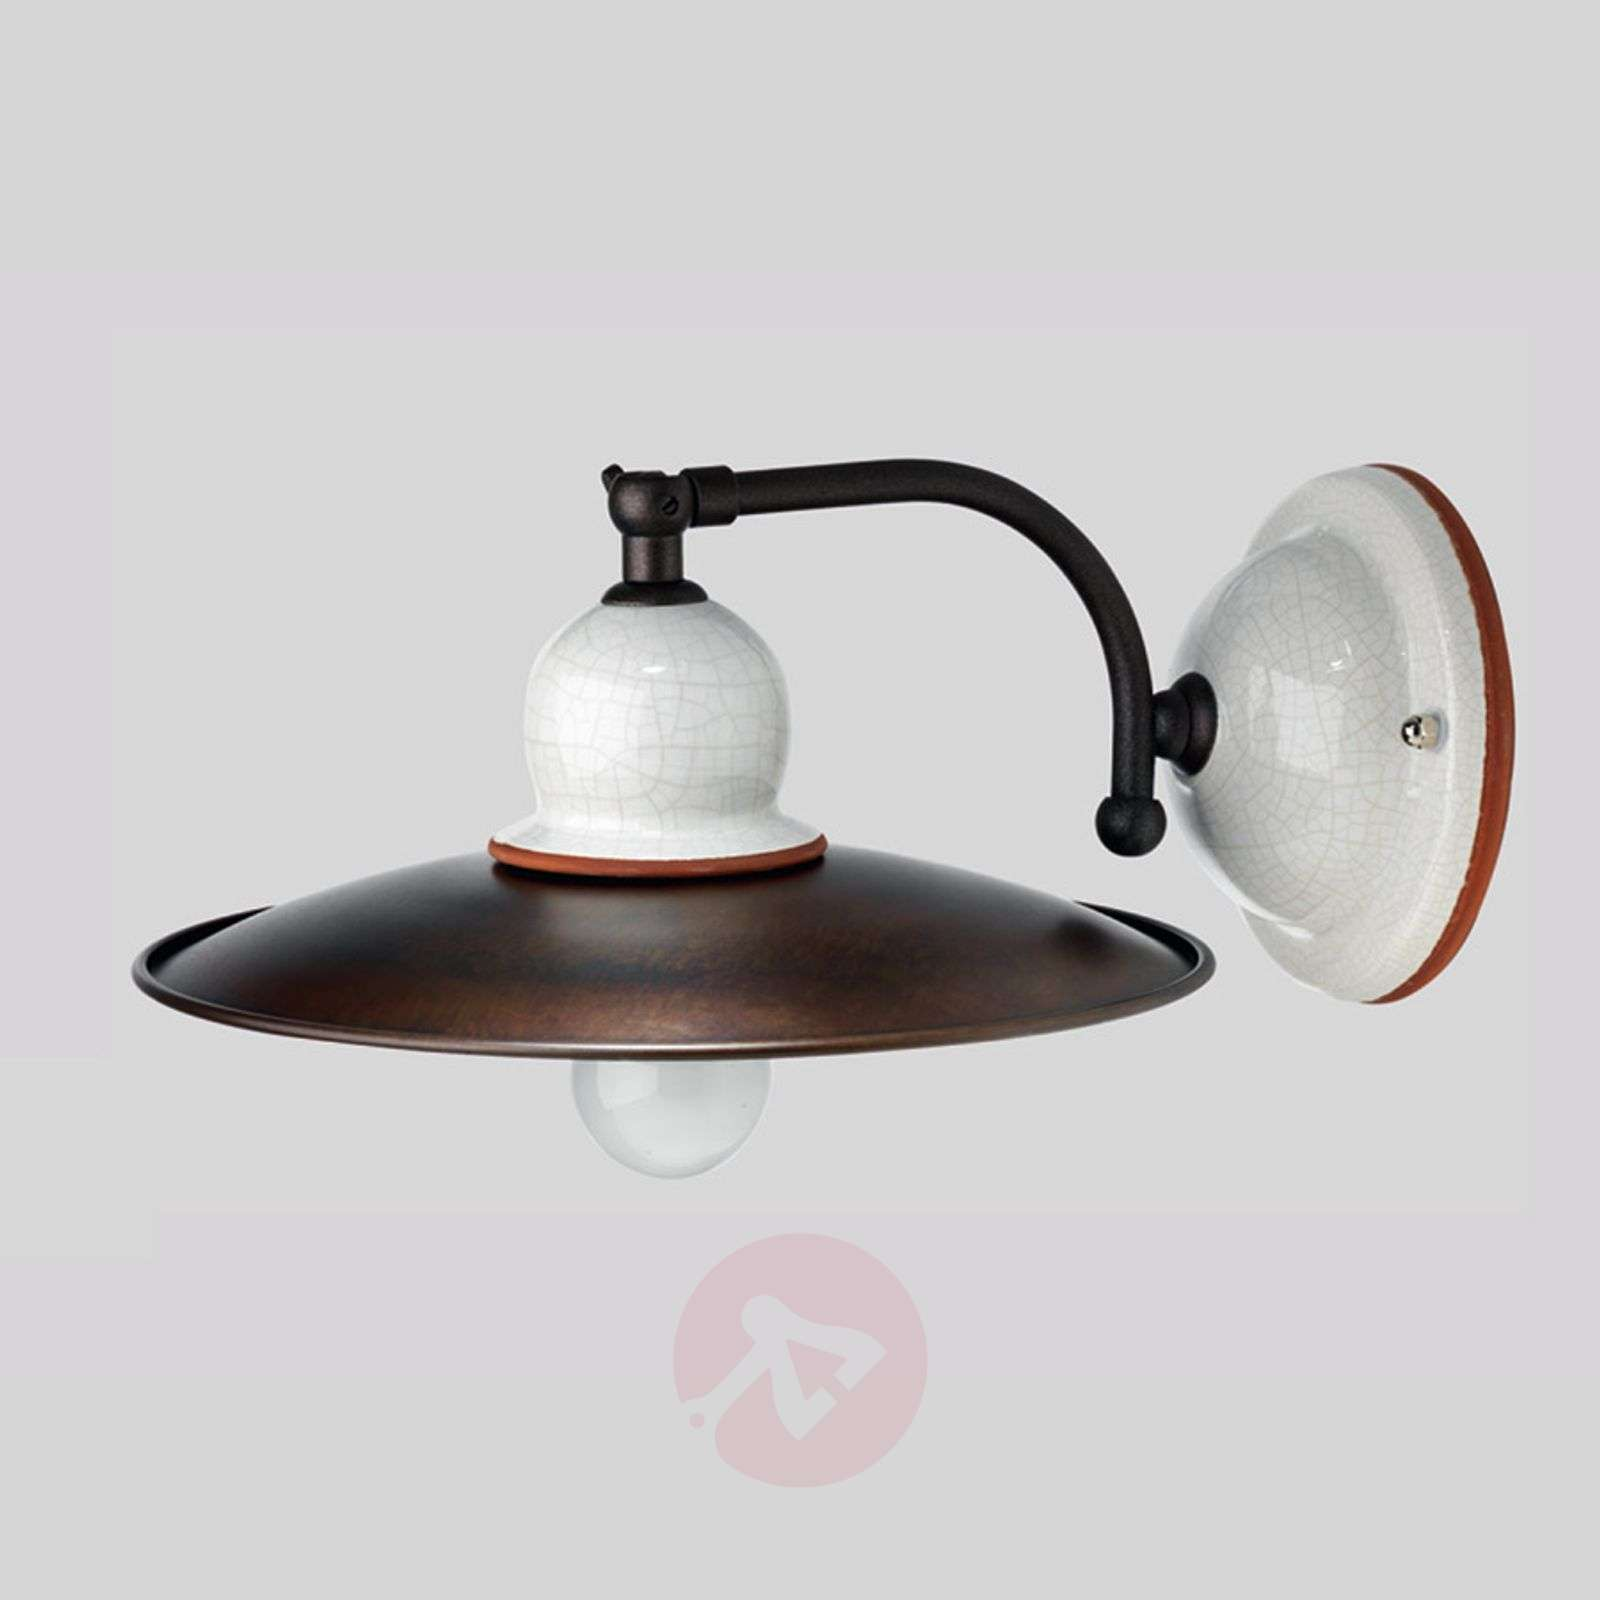 Wall light Ottone-3046131-01